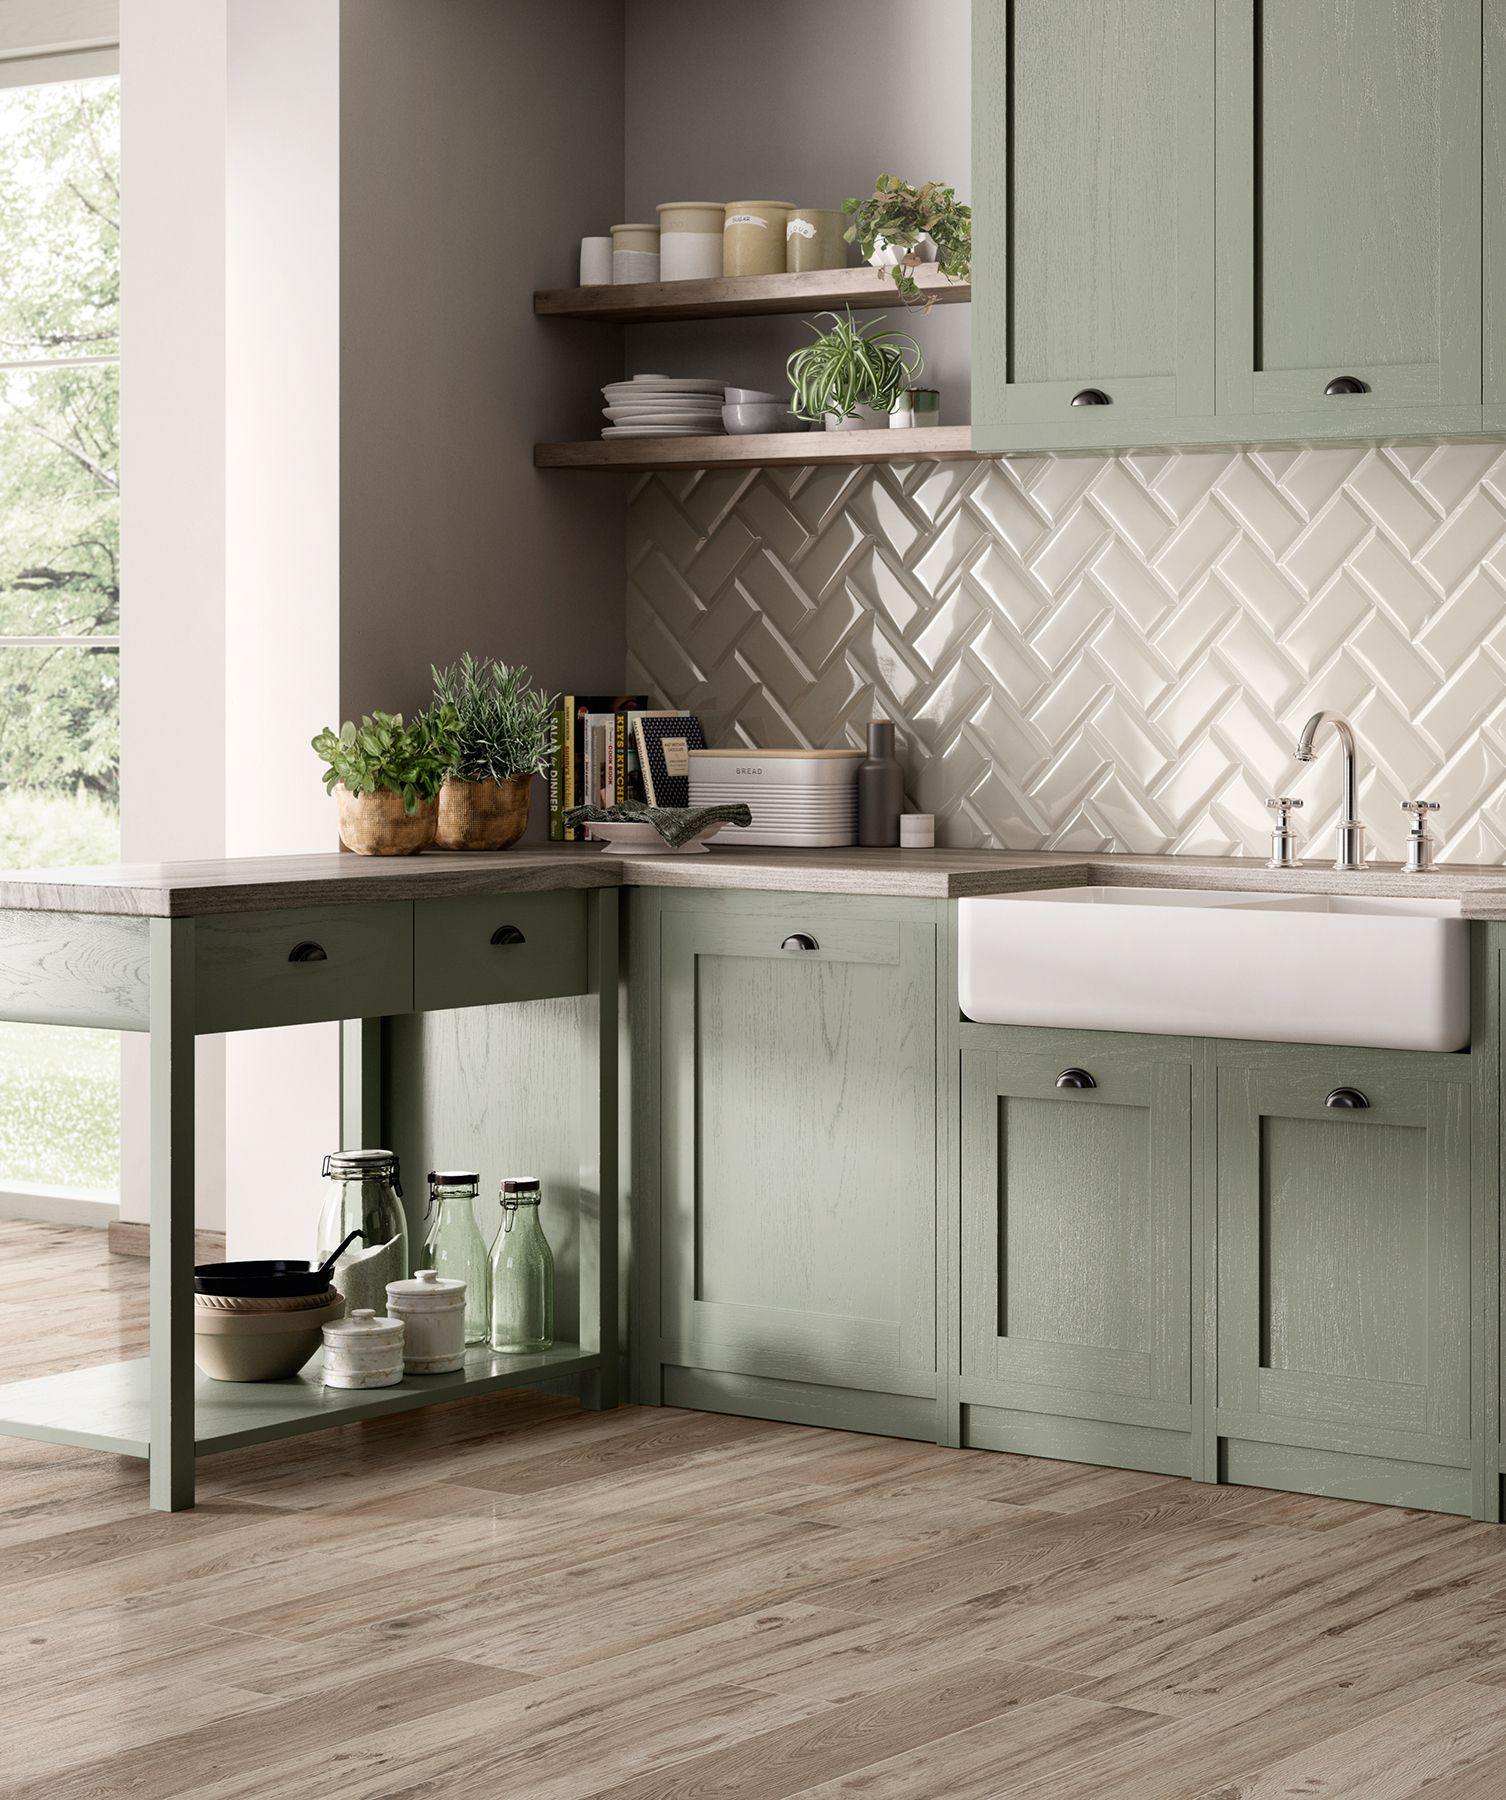 Farm House Chic Sage Green Kitchen With Wood Look Porcelain Floor And Bevelled Subway Tiles Kitchen Decor Inspiration Kitchen Interior Home Decor Kitchen